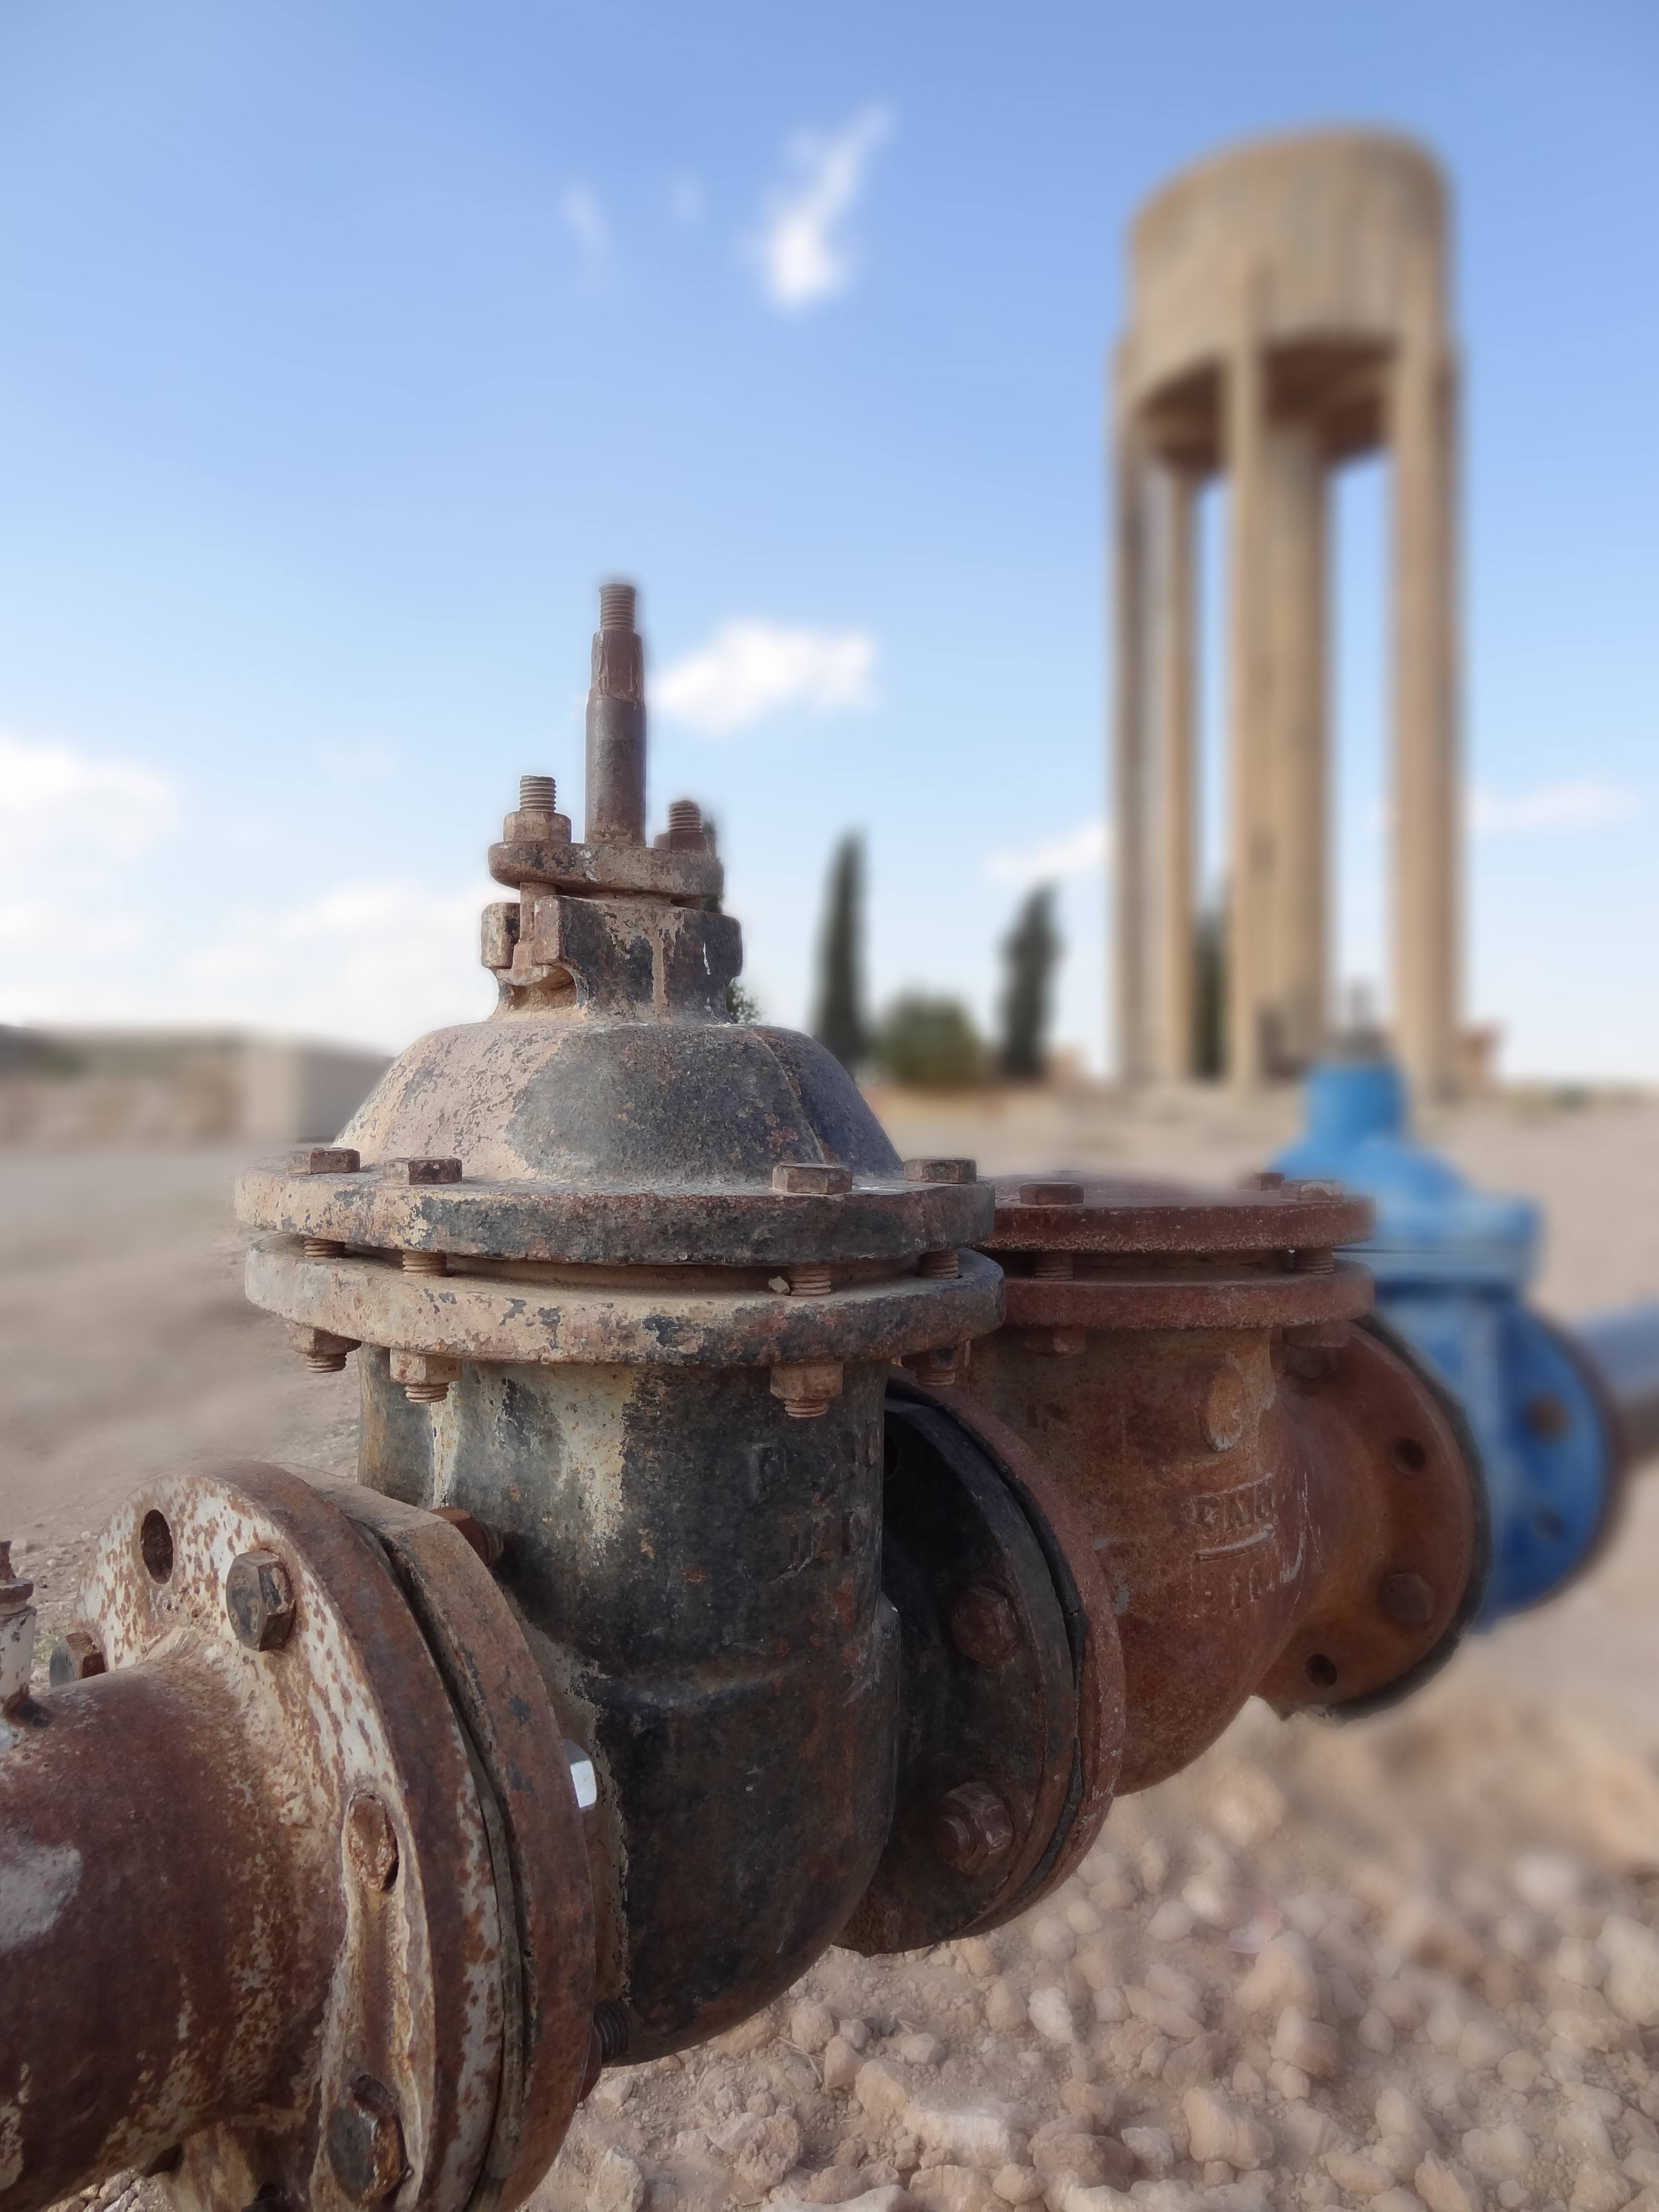 A water pump and tower in Syria